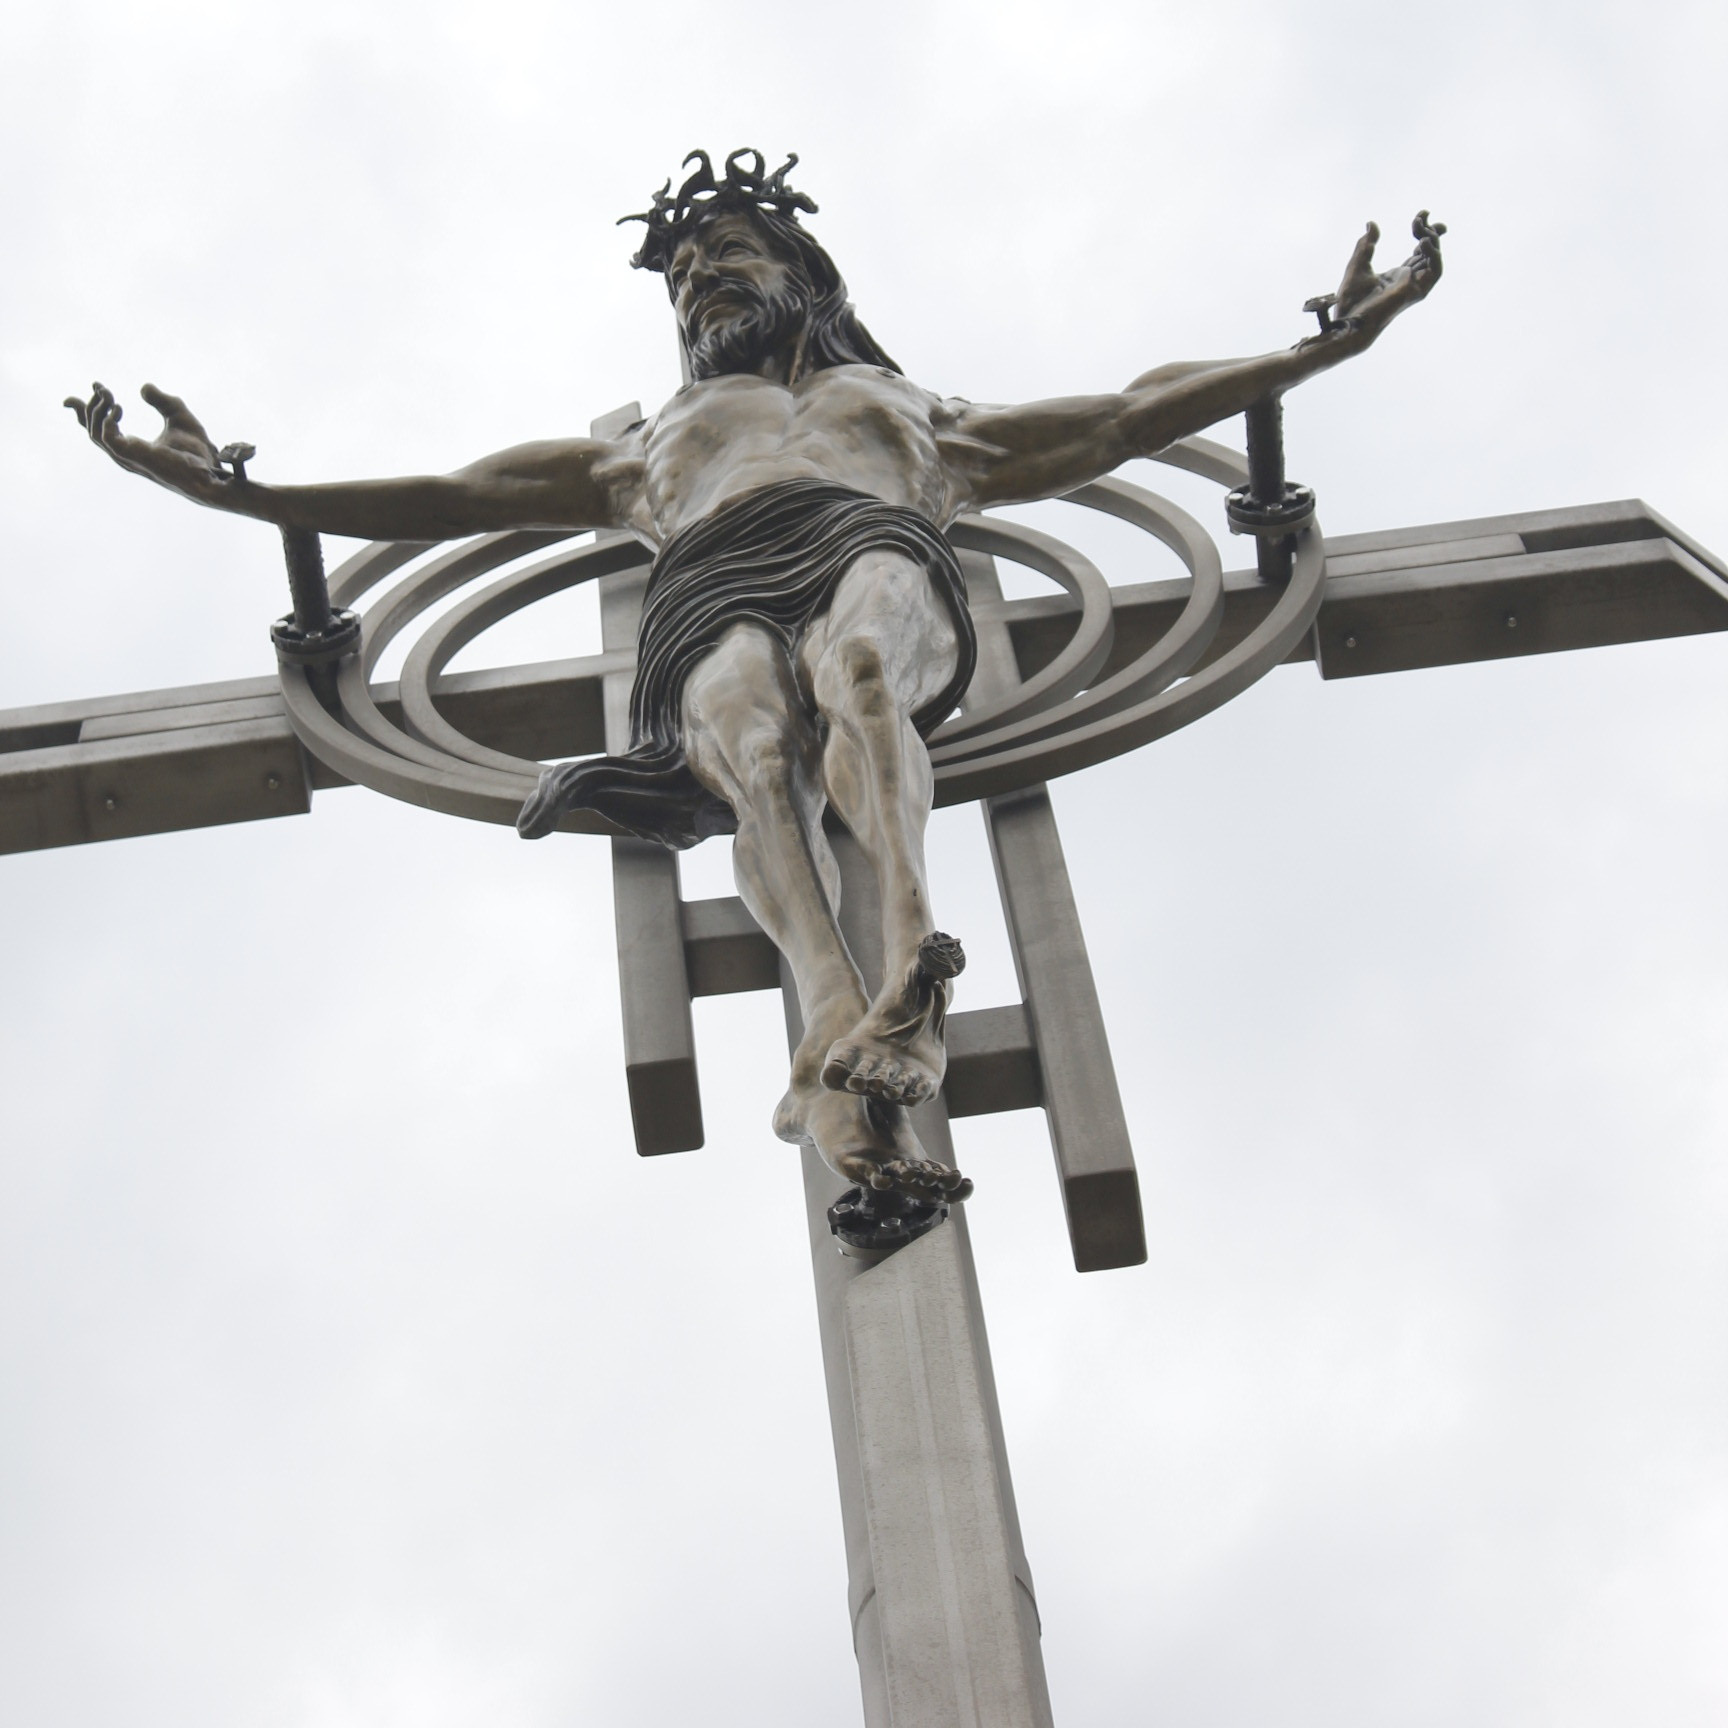 Grace is free - but not without cost. Jesus paid the cost for us.